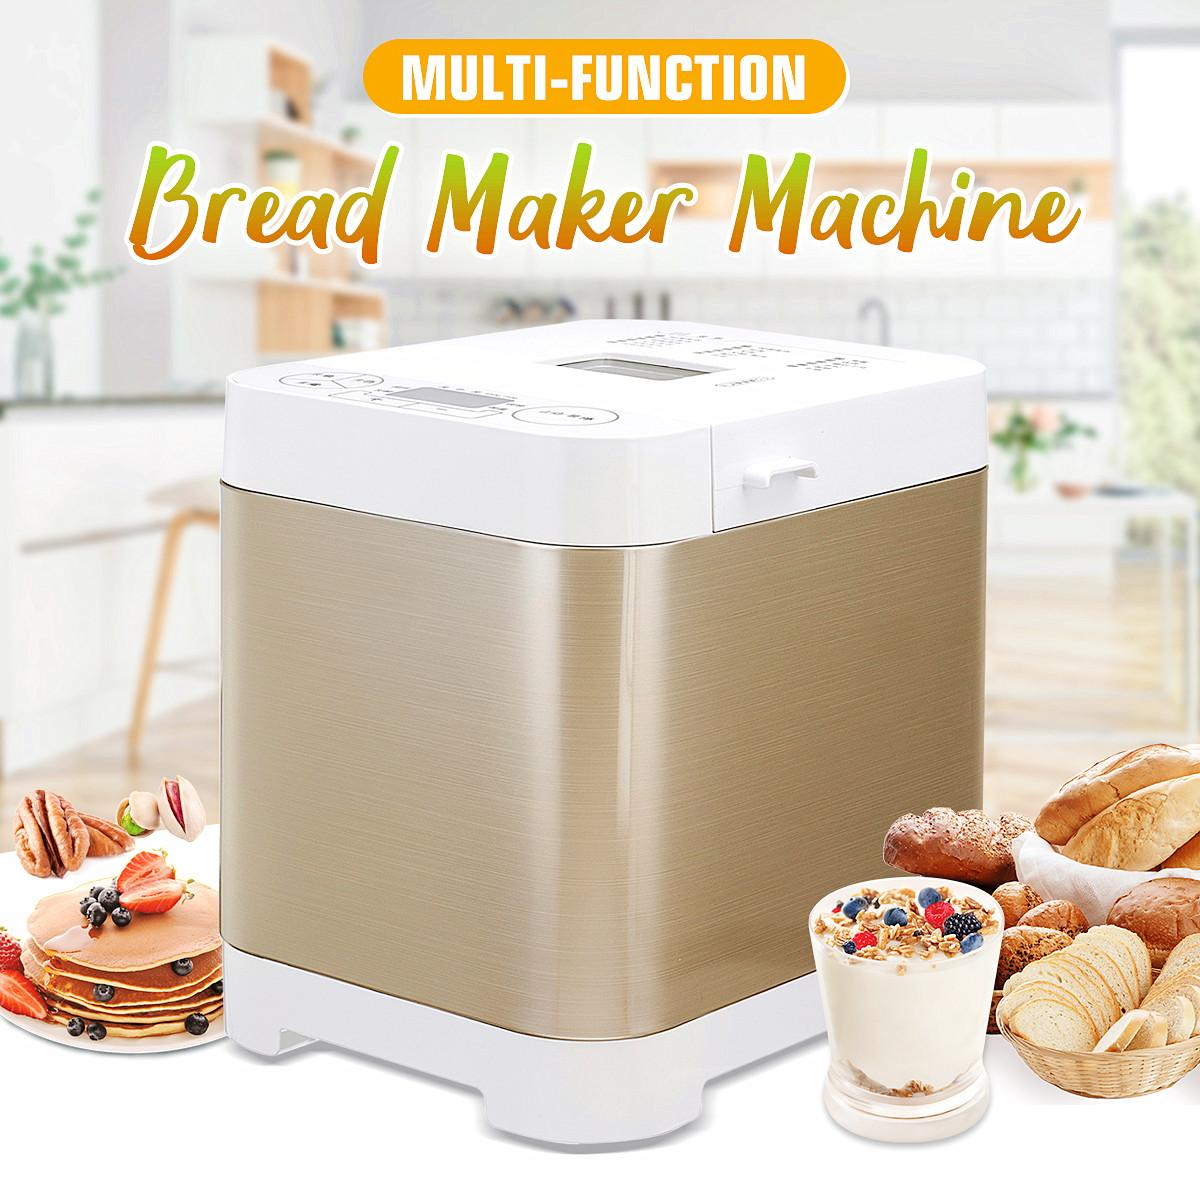 New 450W Mini Multifunction Bread Maker Automatic Intelligent Bread Baking Home Diy Yogurt Maker Machine Household Cooking Tools